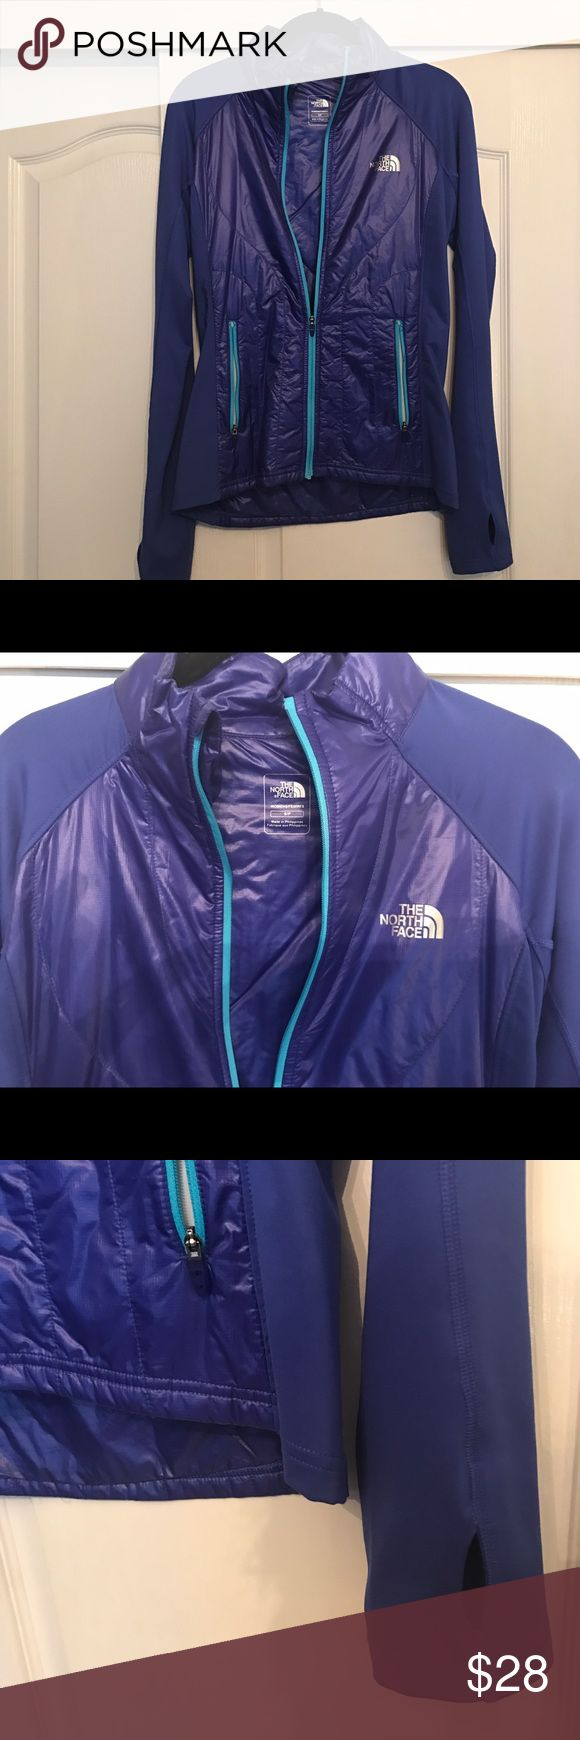 North Face Track Jacket Bright blue North Face track jacket! Only been worn a couple of times, great condition. With keyhole details on sleeve. Great for outdoor sports activity! Size Small. North Face Jackets & Coats